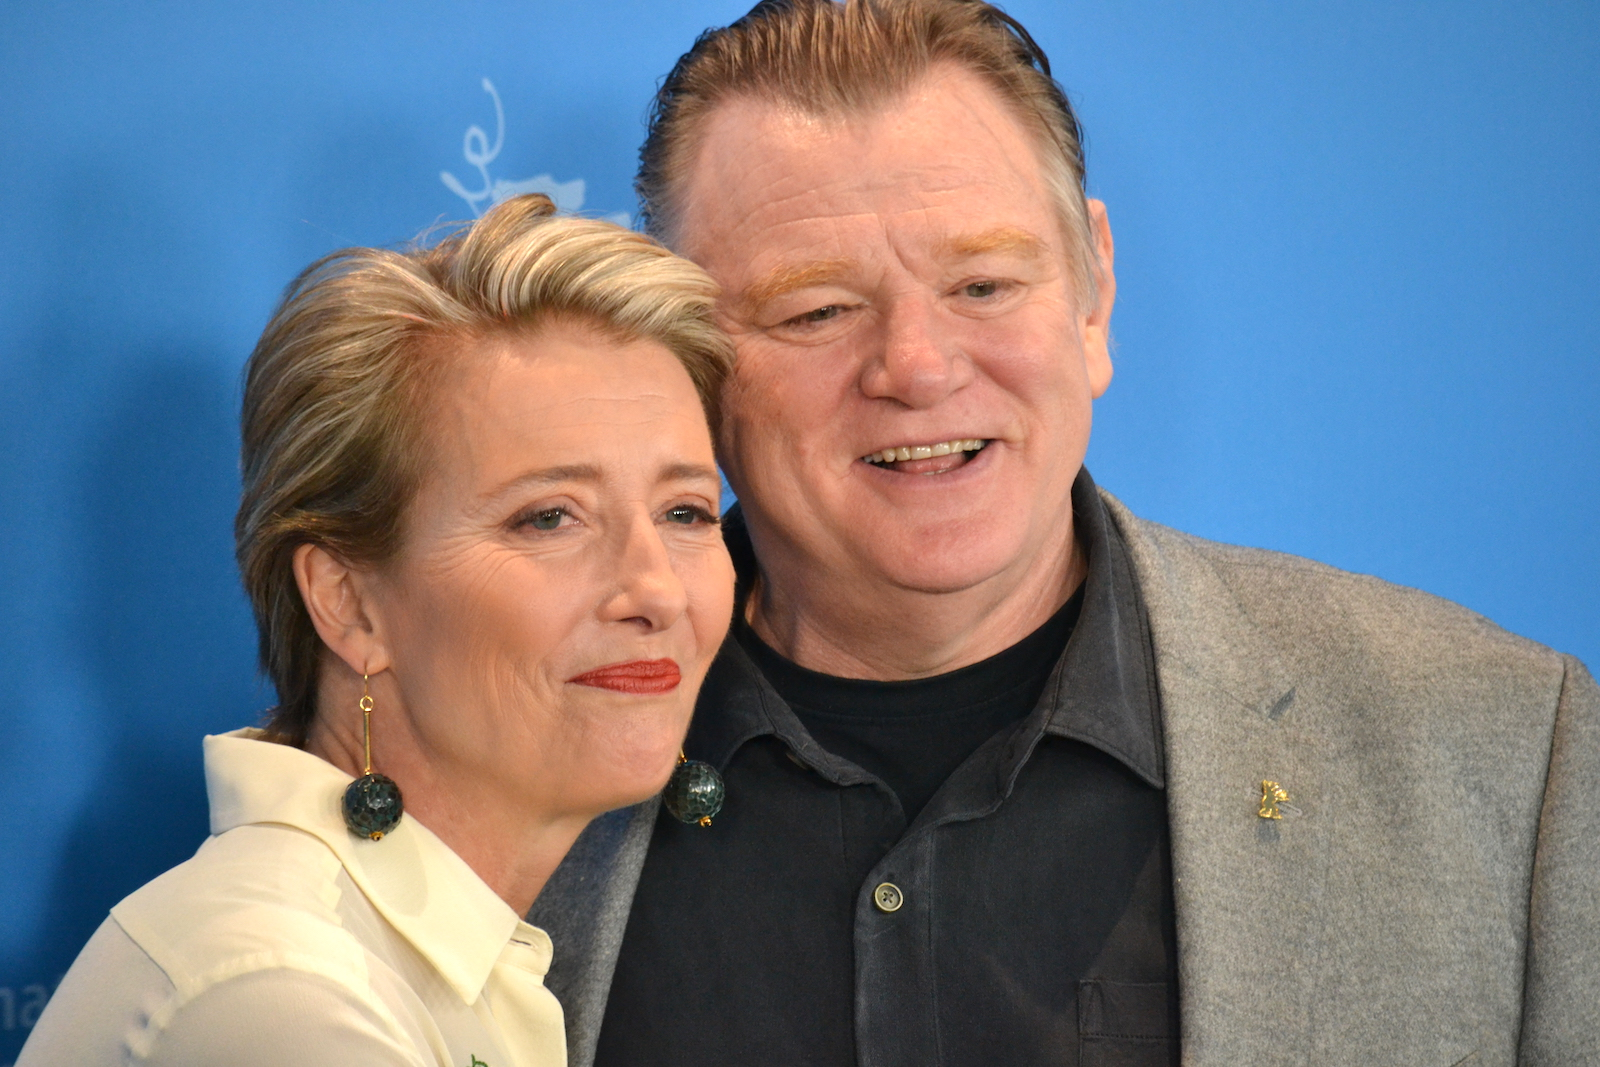 Berlino 2016: Emma Thompson e Brendan Gleeson al photocall di Alone in Berlin